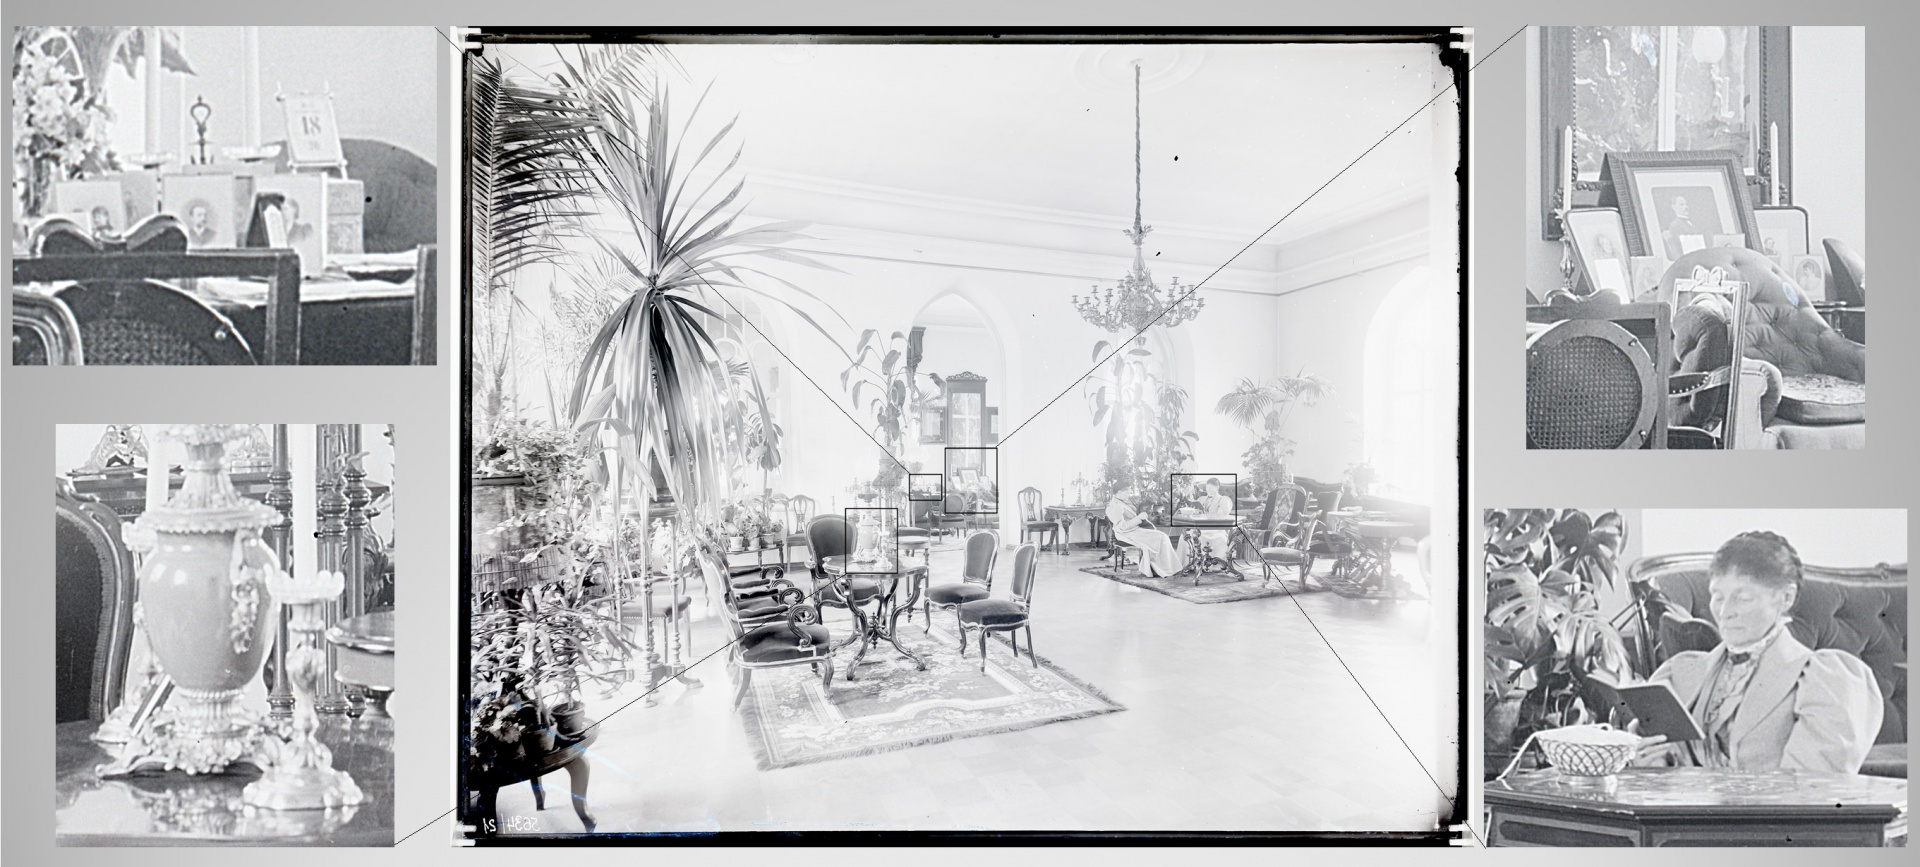 fig 8. The quality of the positive copy of a value-based digitised glass negative gives an opportunity to differentiate in detail what was photographed. The interior of Kukulinna Manor in the early 20th century. AM. 8631.